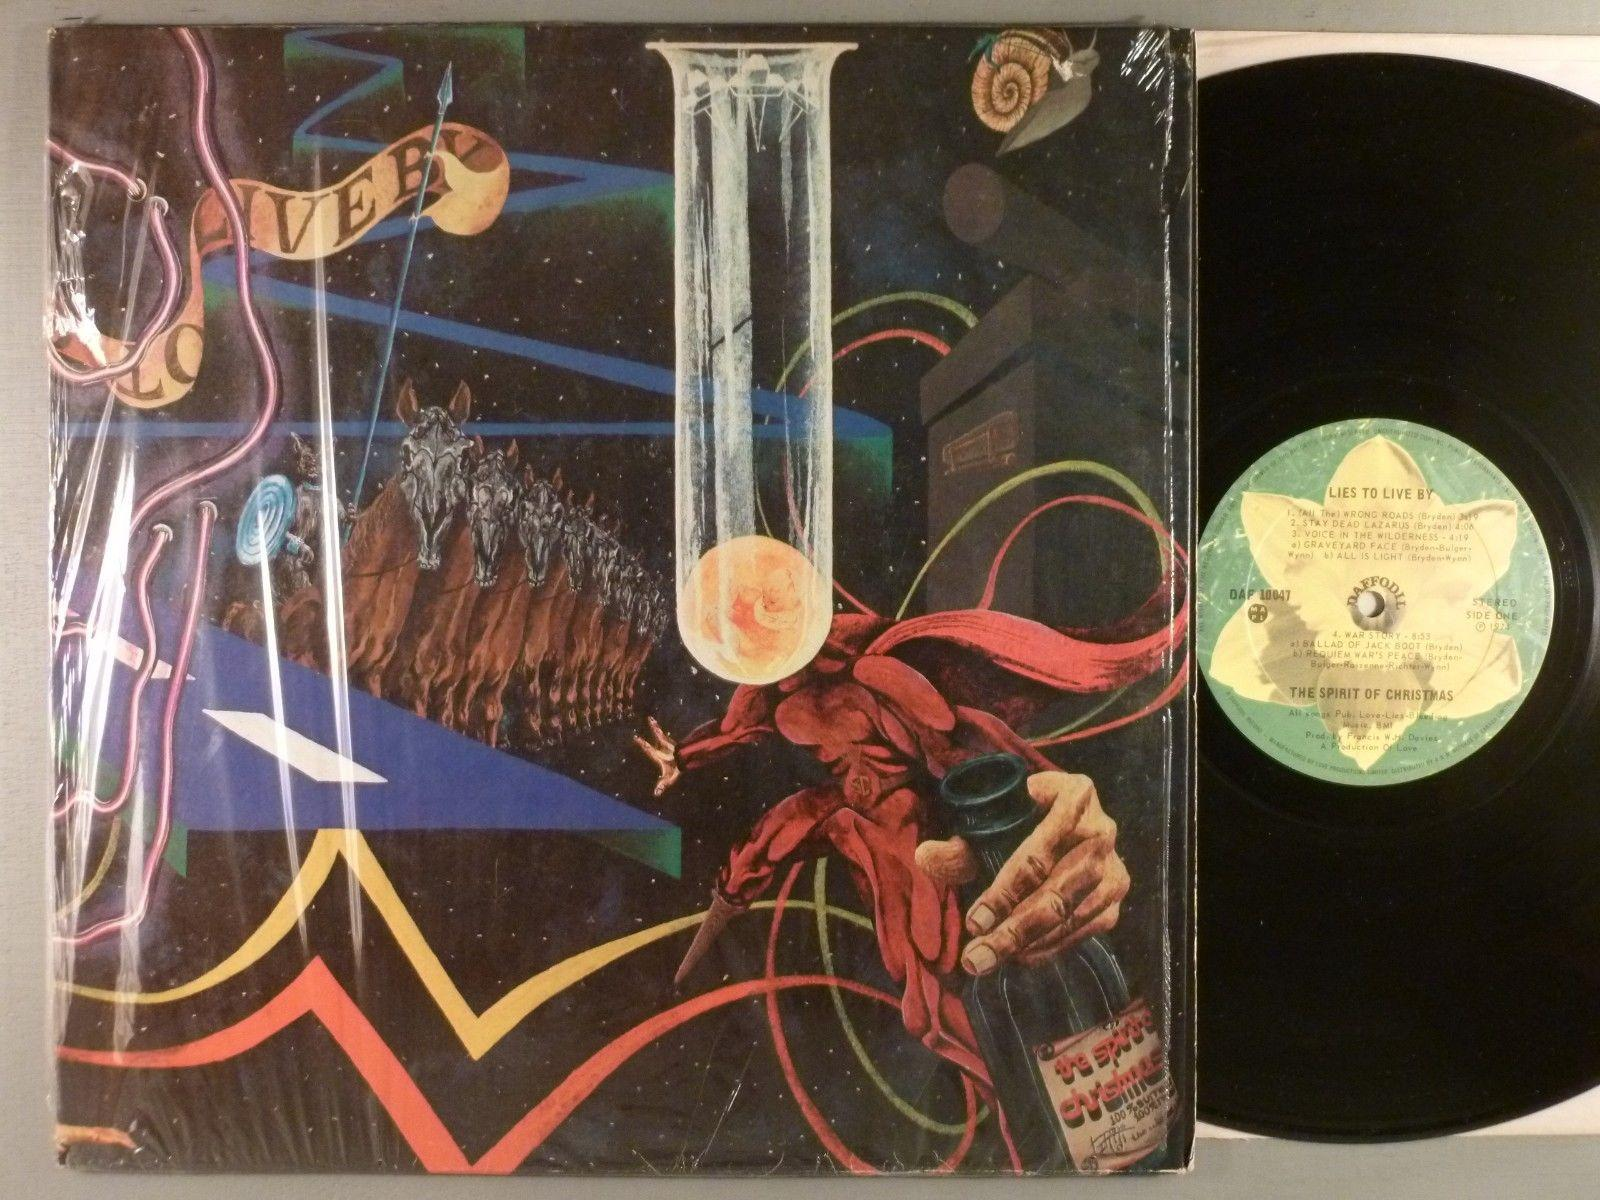 Spirit Of Christmas, The  Lies To Live By  Hard Rock; Psych Prog  Canadian Press